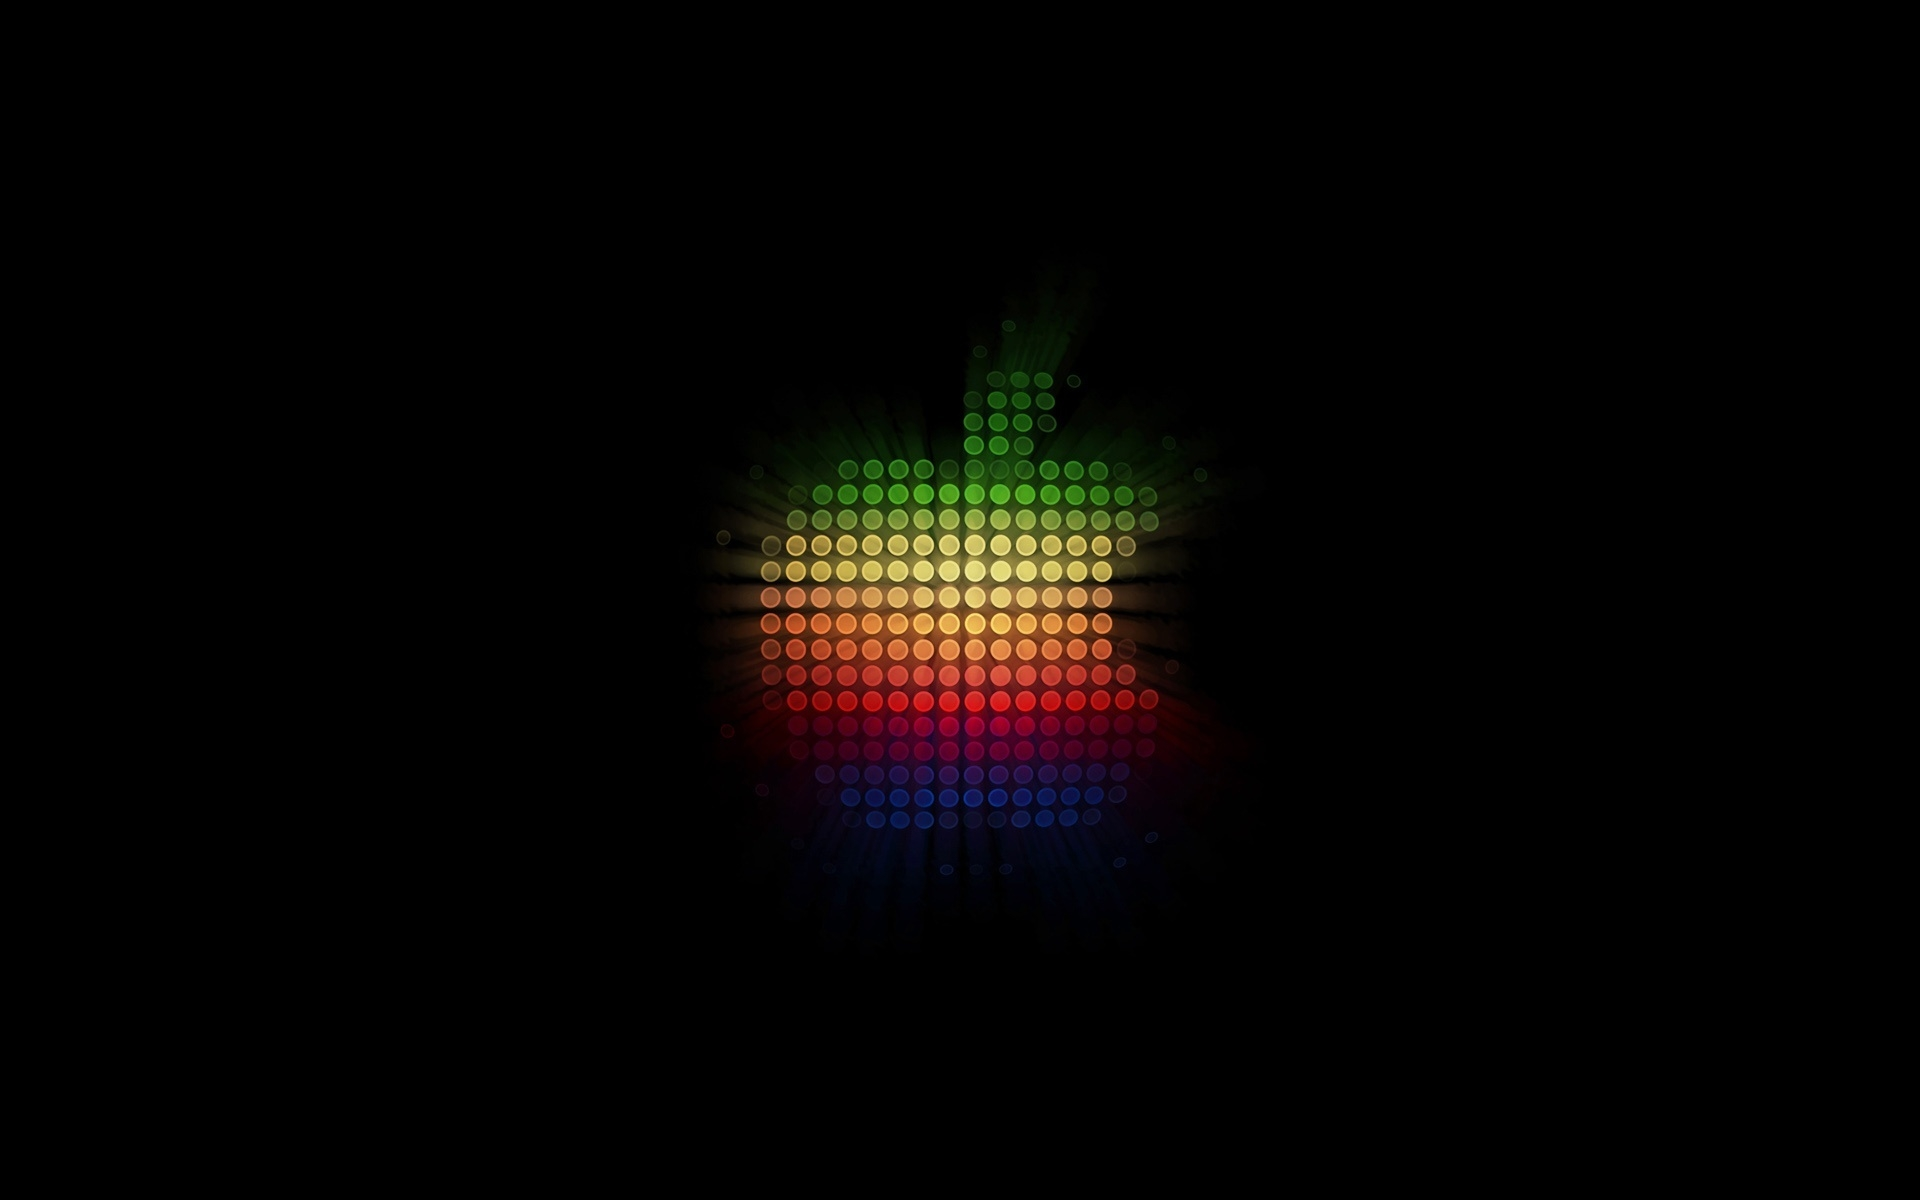 apple 1920 x 1080 hd 1080p wallpaper yb88 org desktop wallpapers 1920x1200